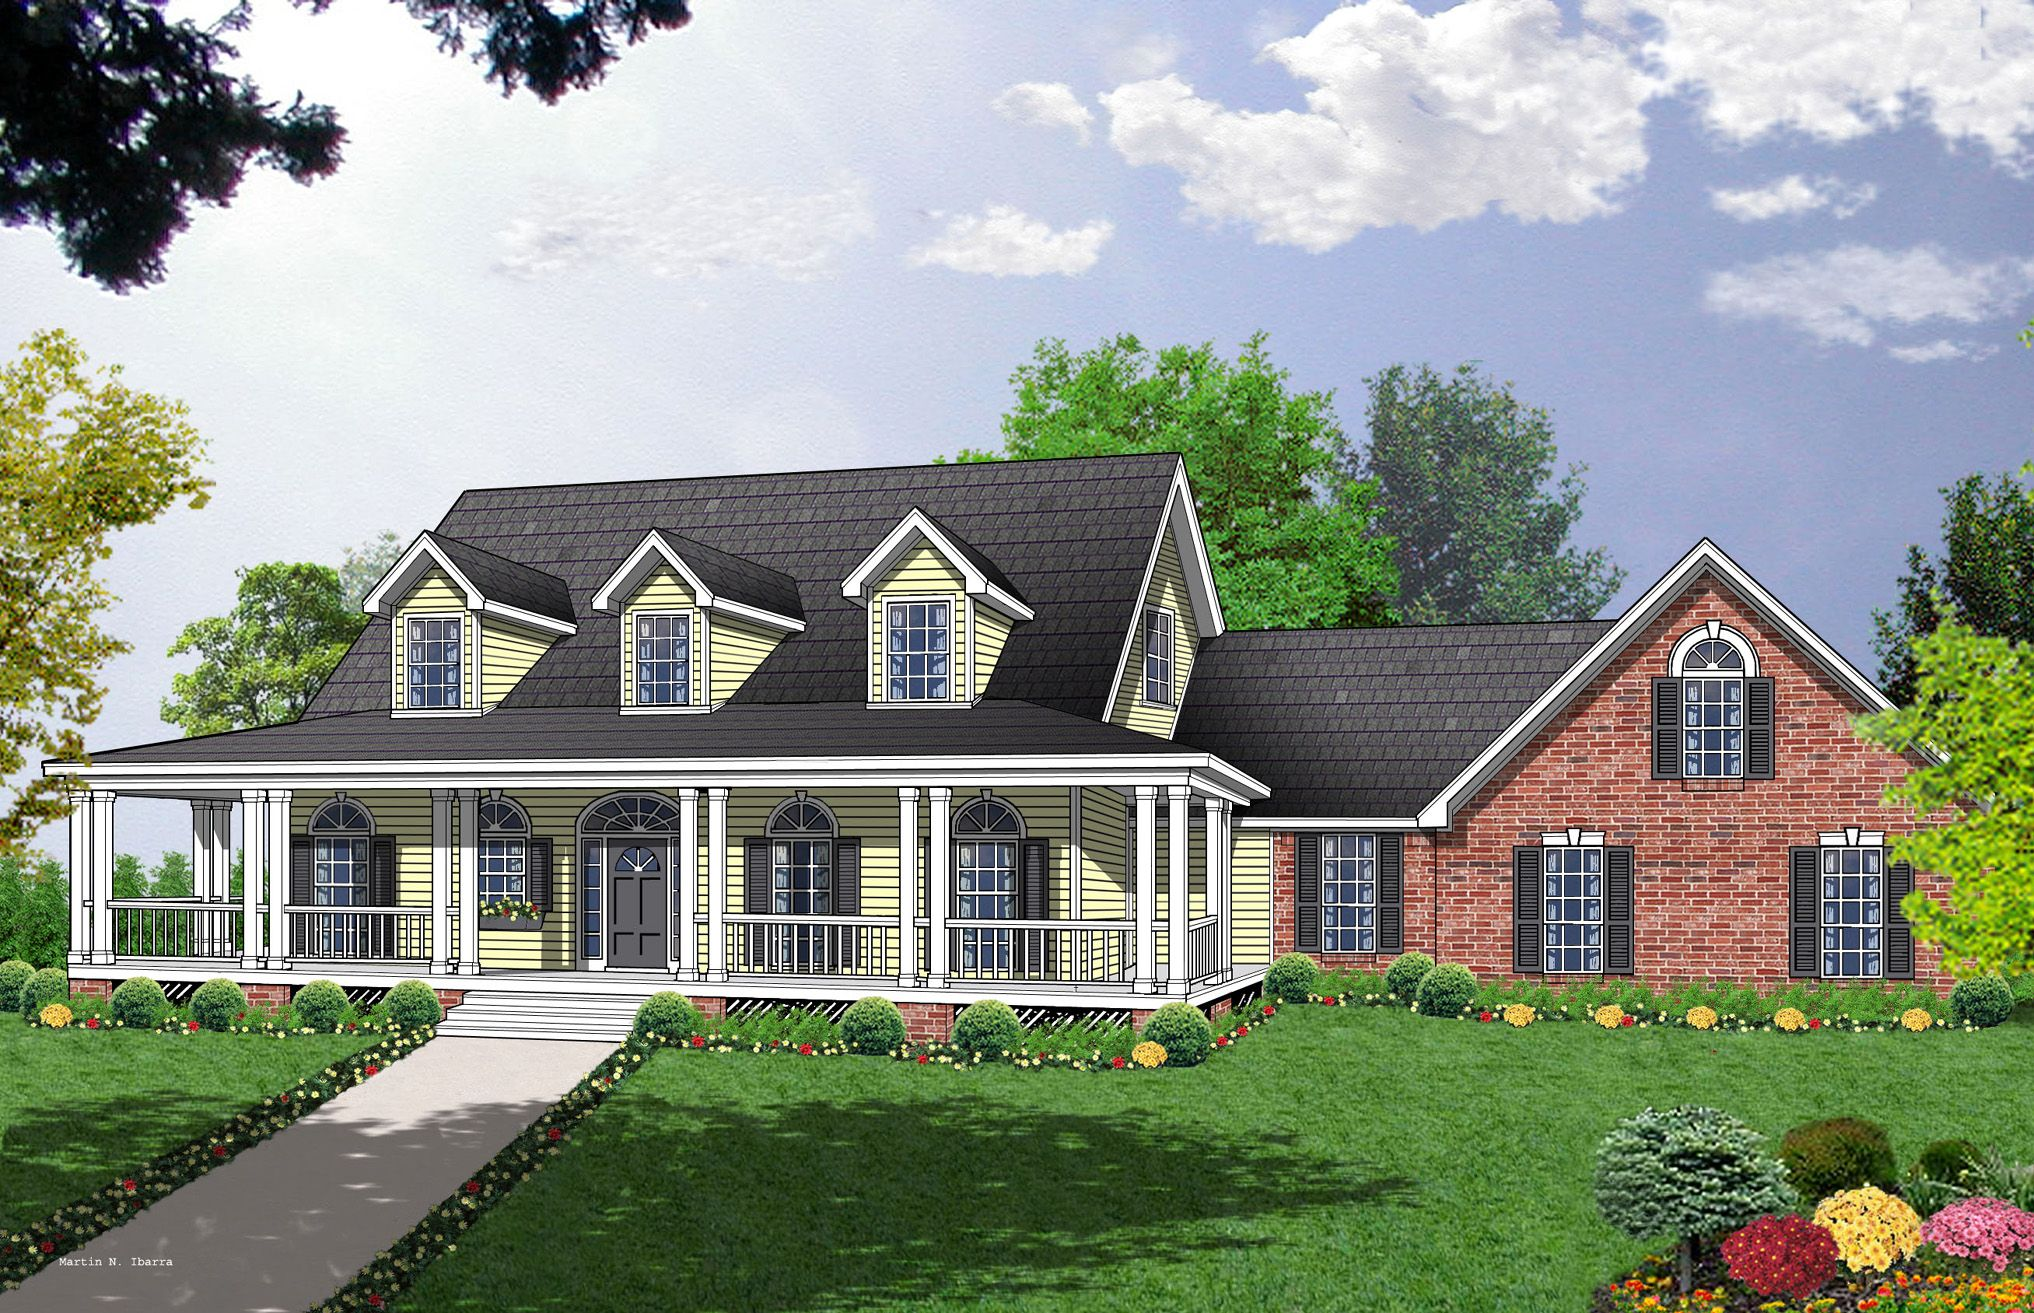 1000+ images about house plans on Pinterest raftsman, Bonus ... - ^